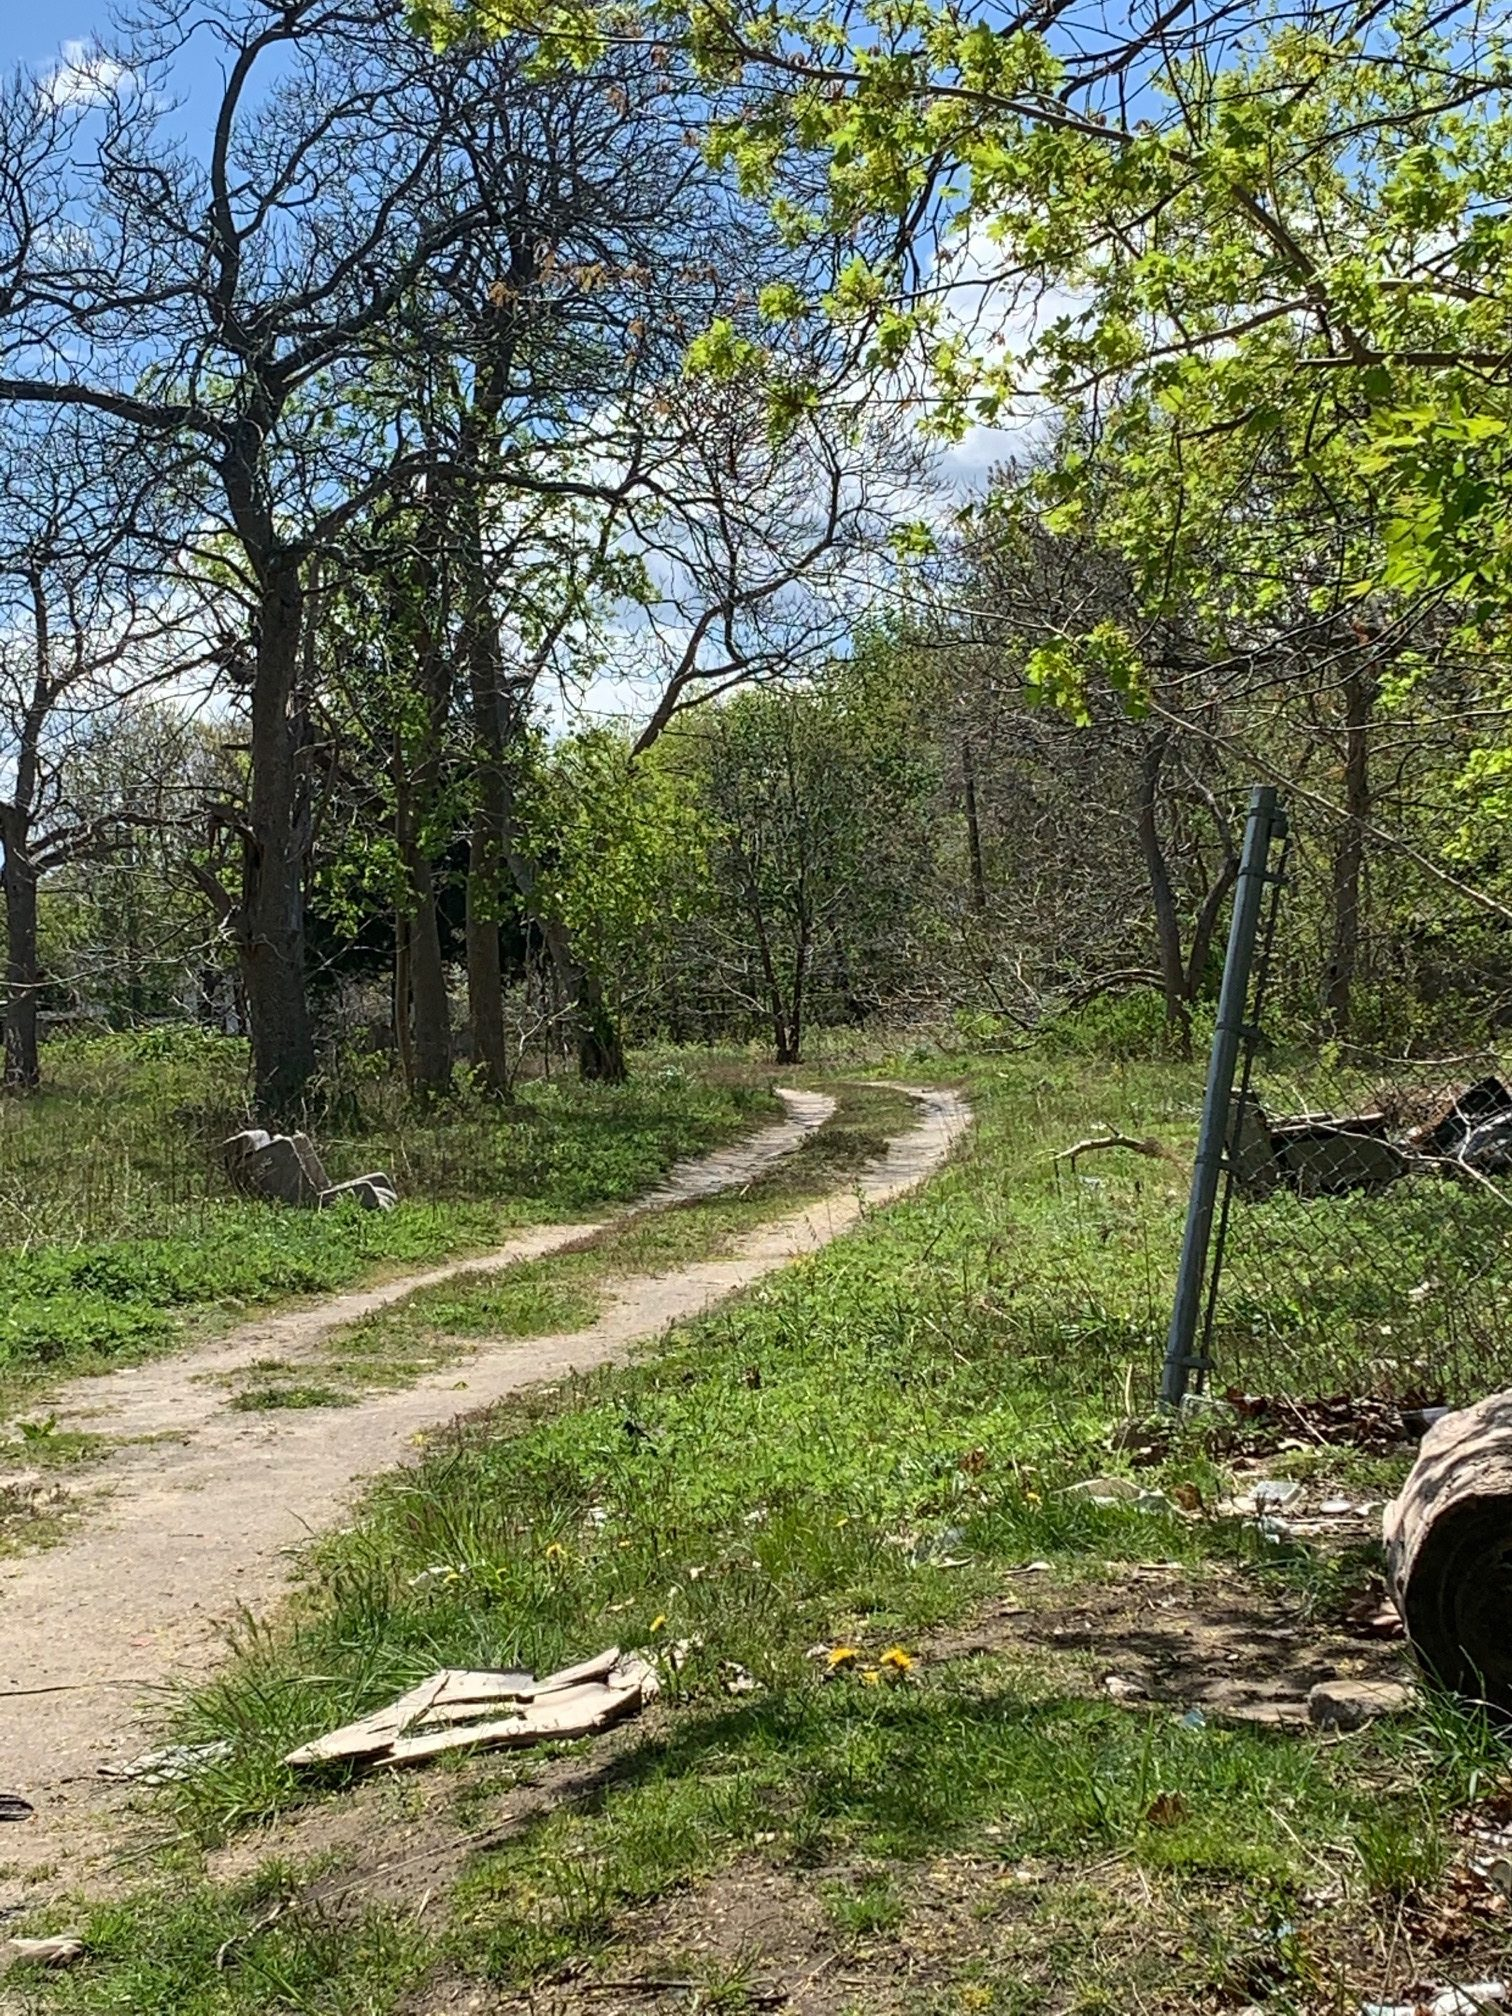 The path along the rear of the town property.